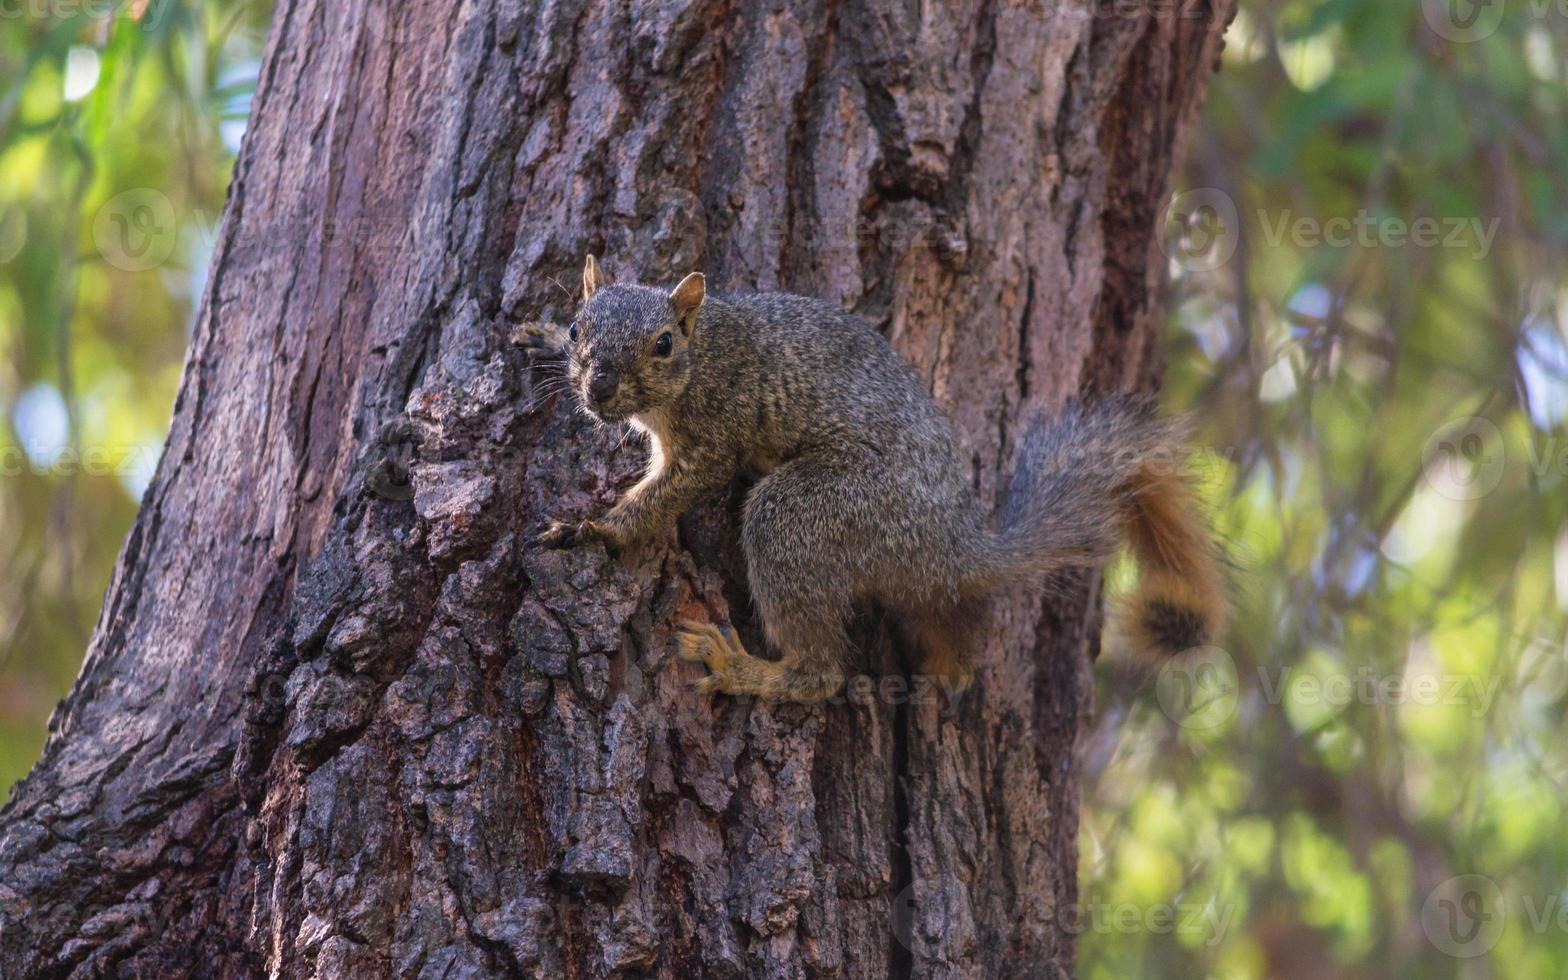 Fox Squirrel in a Tree photo